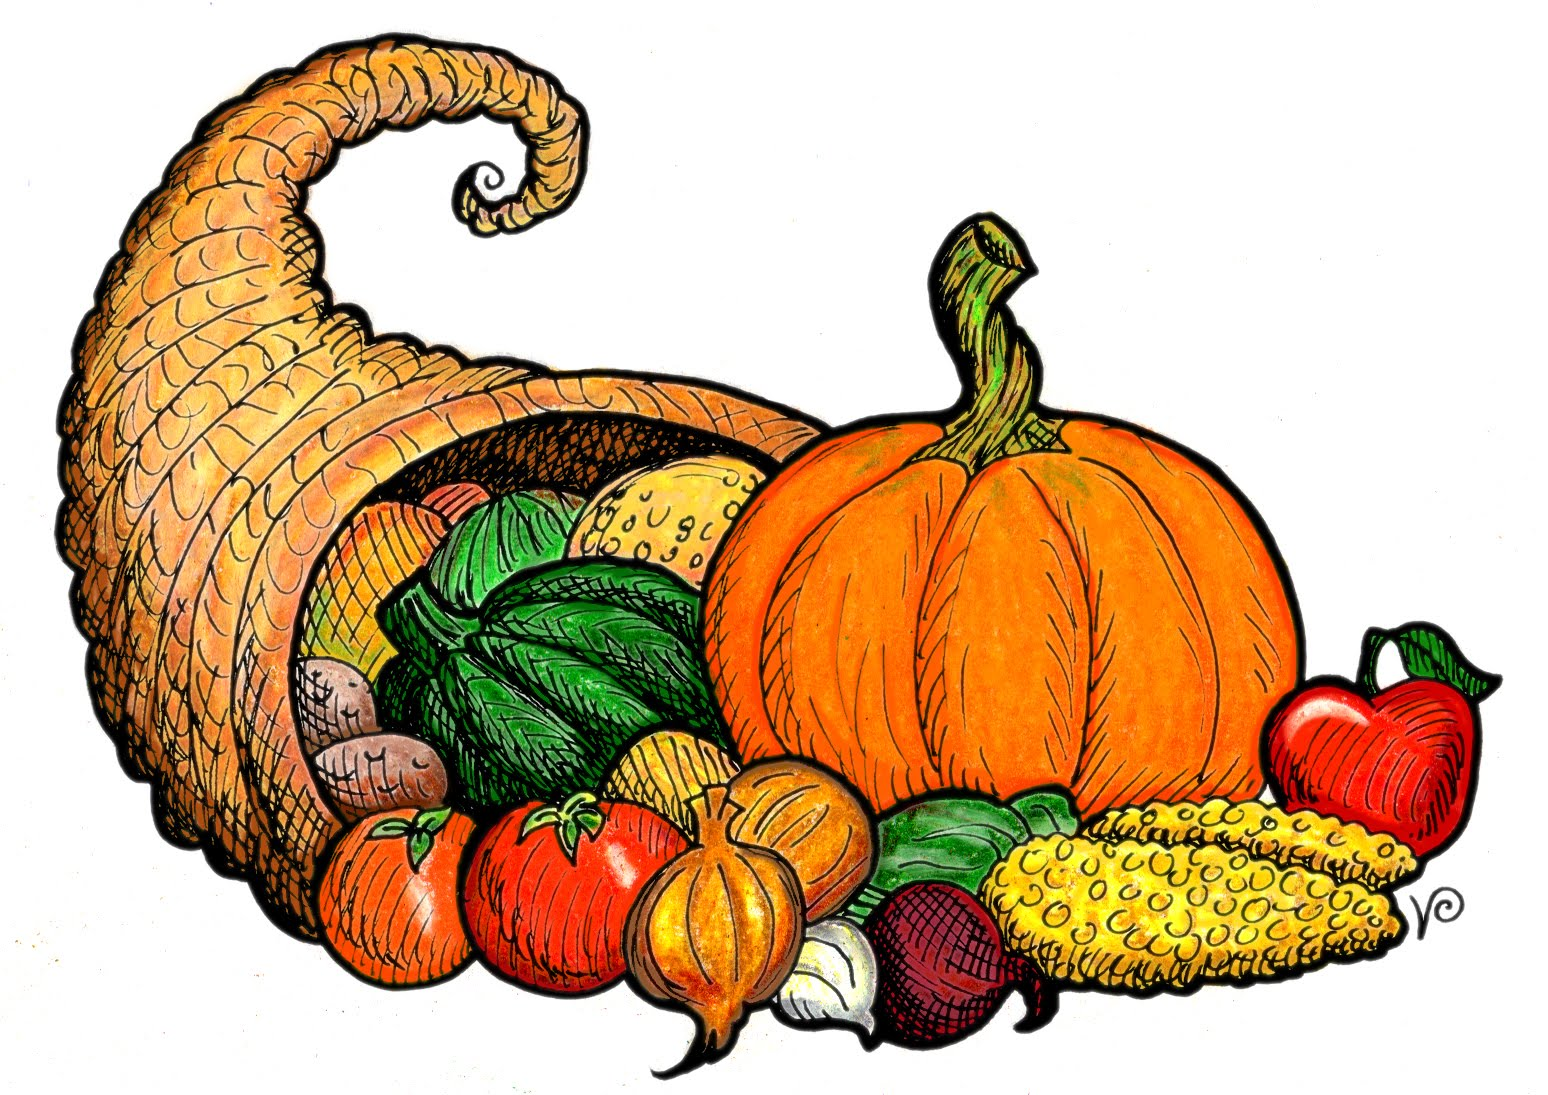 10 Images For Thanksgiving Free Cliparts-10 Images For Thanksgiving Free Cliparts That You Can Download To You-0